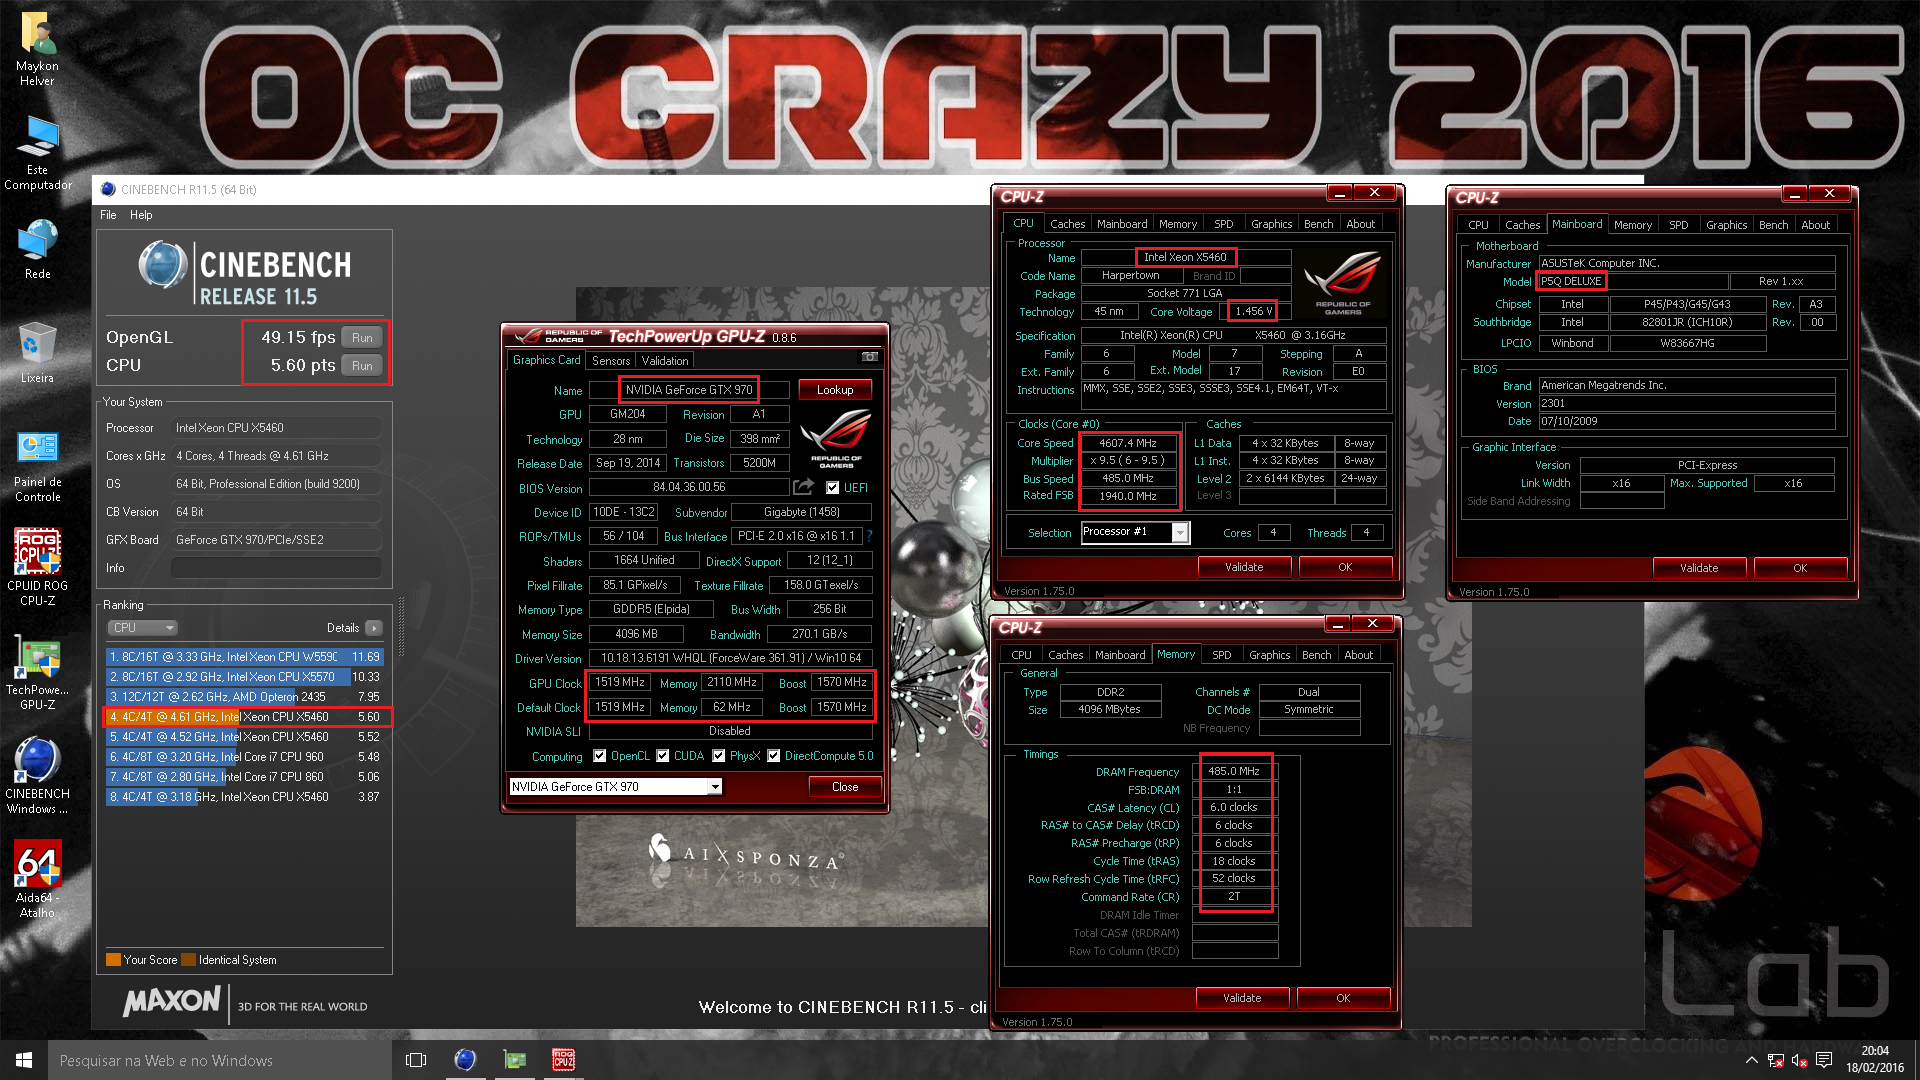 EROSBENCH`s Cinebench - R11 5 score: 5 6 points with a Xeon